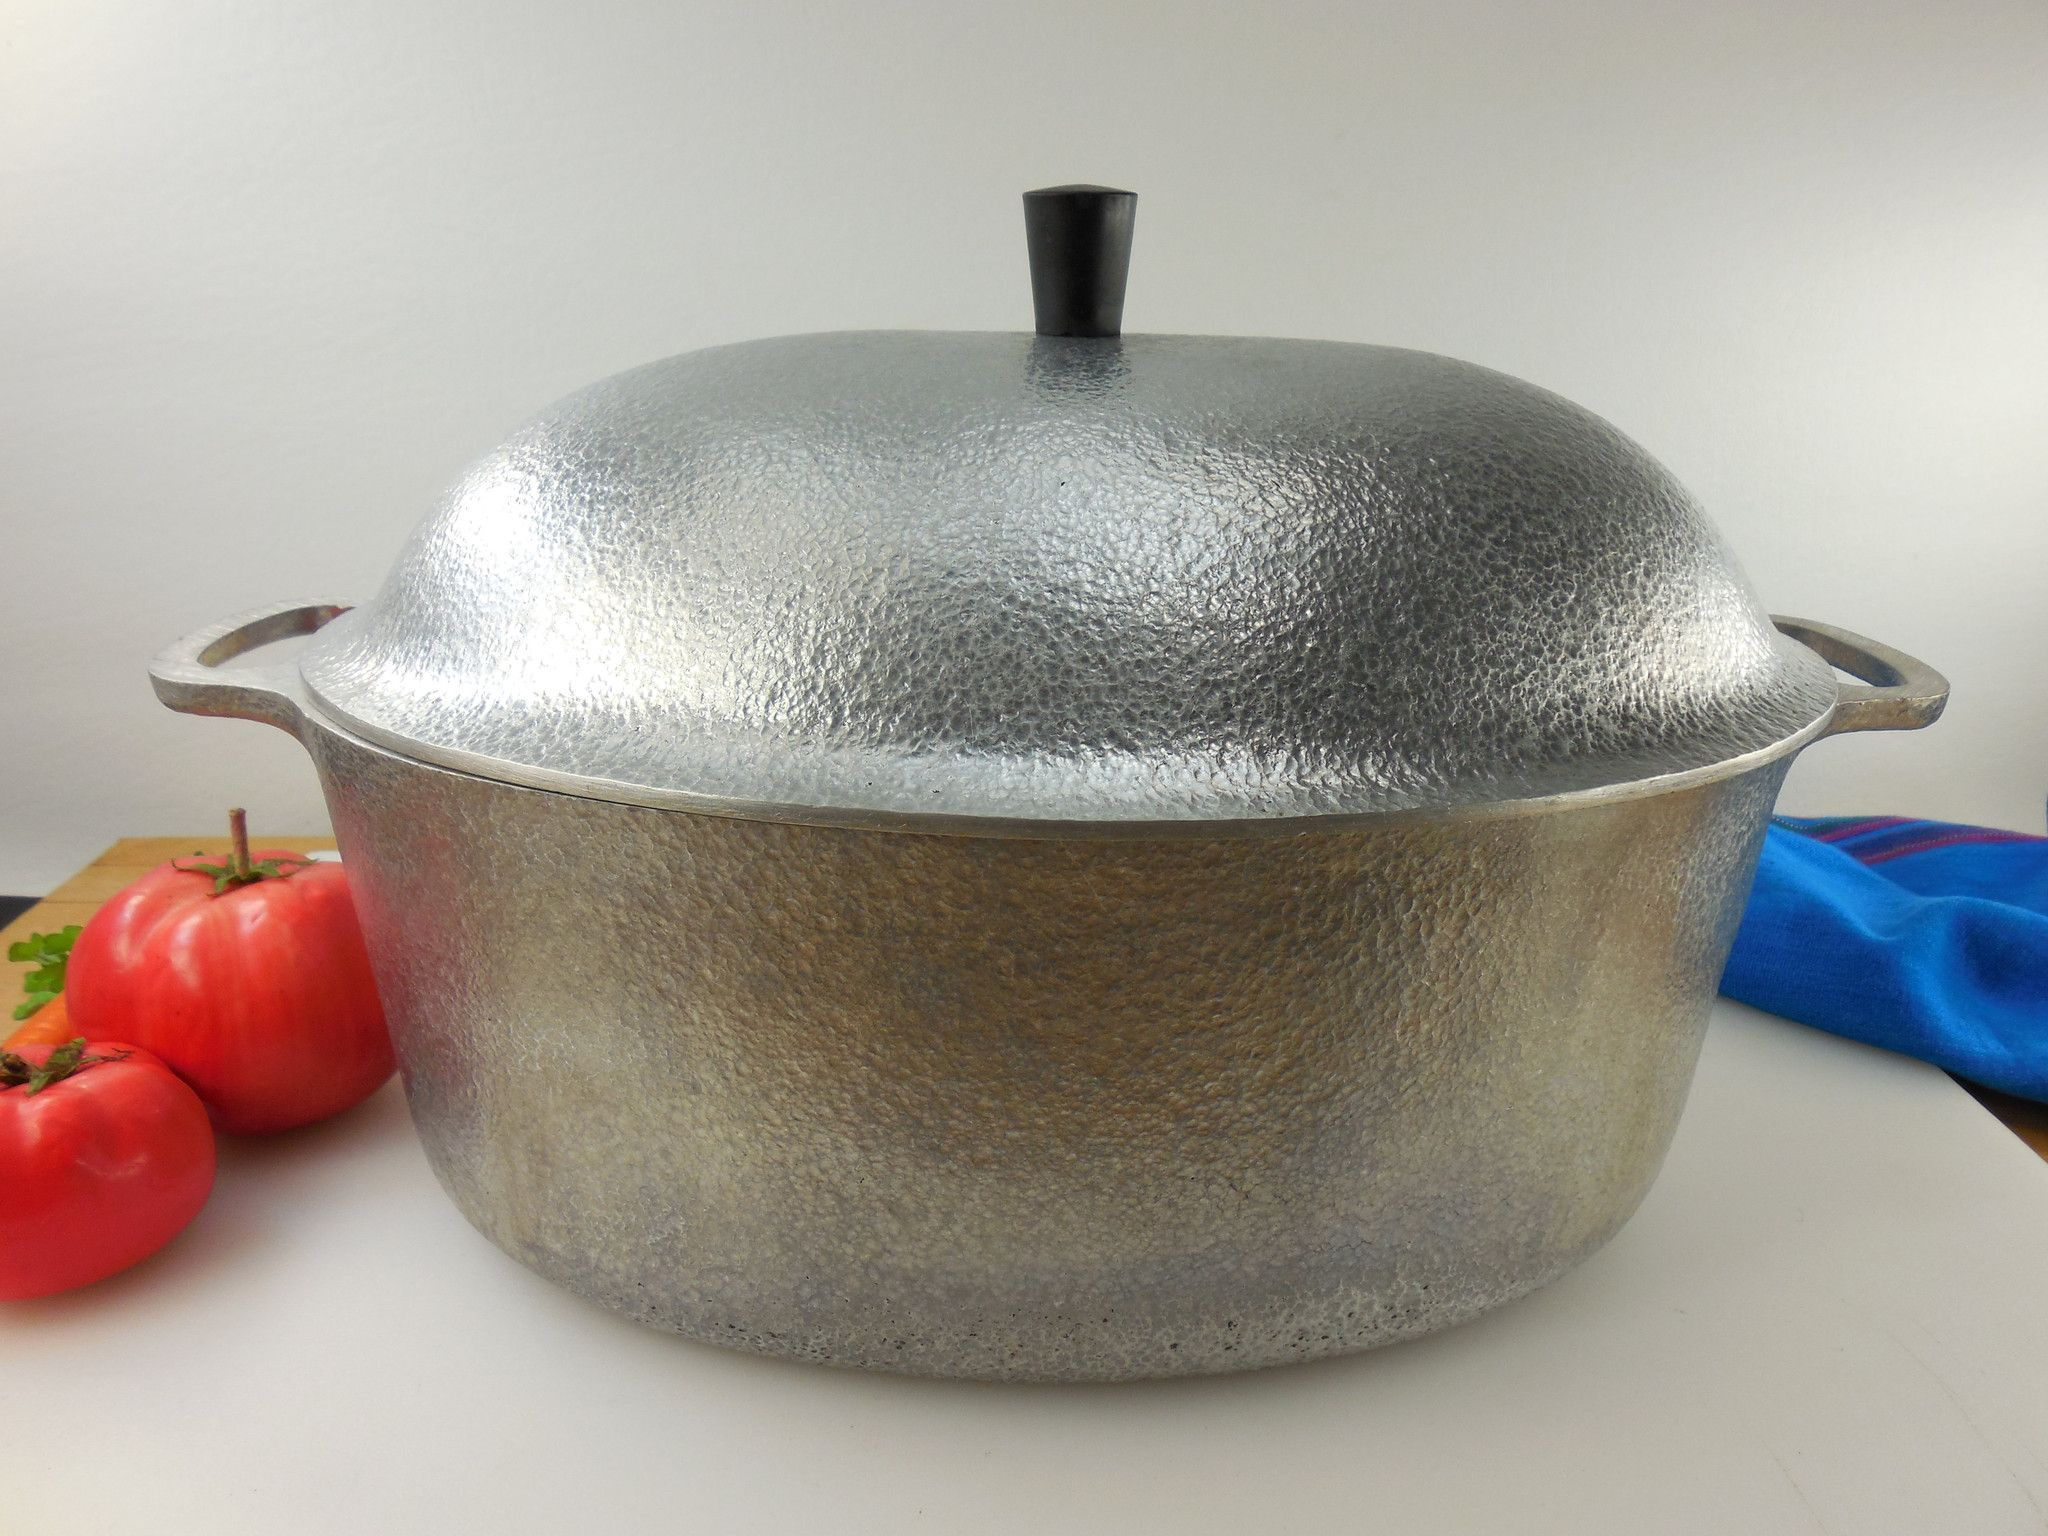 Sold Club Hammered Aluminum 15 Oval Roaster Pot With Lid Usa Vintage Hammercraft Cookware Usa Vintage Cookware Cookware Vintage